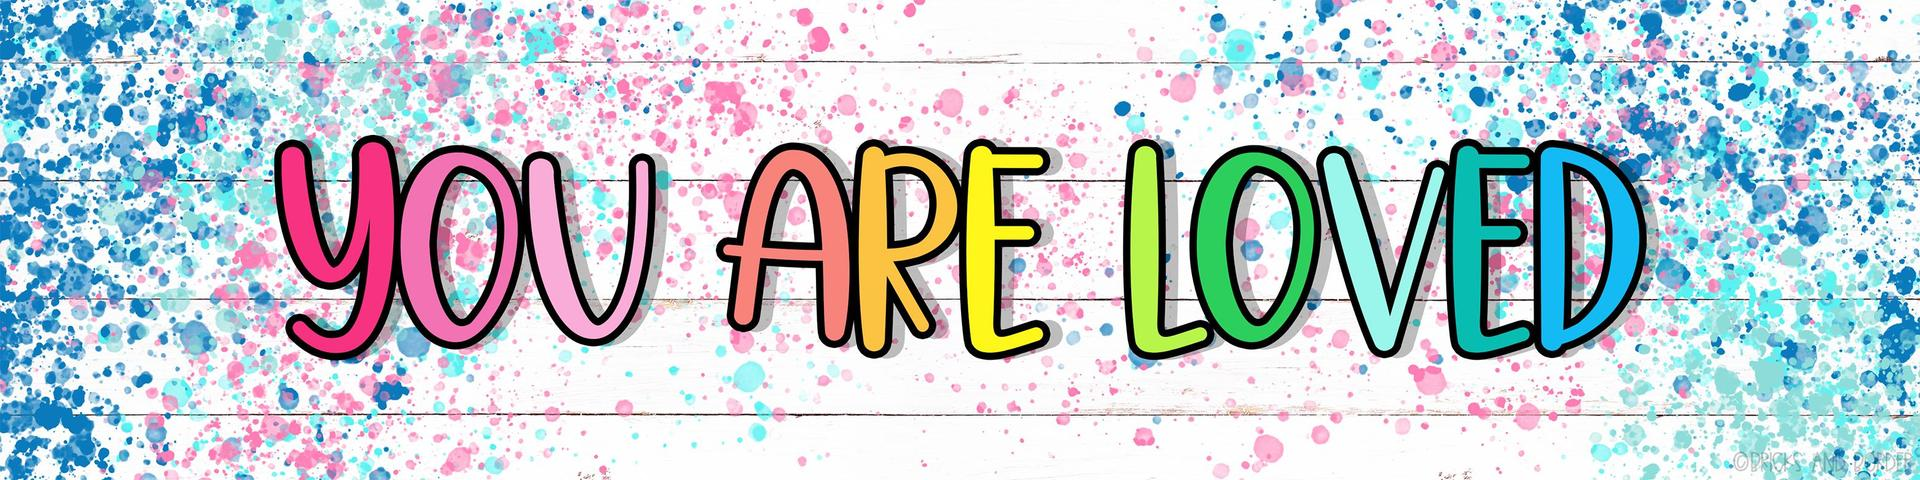 You are loved picture header